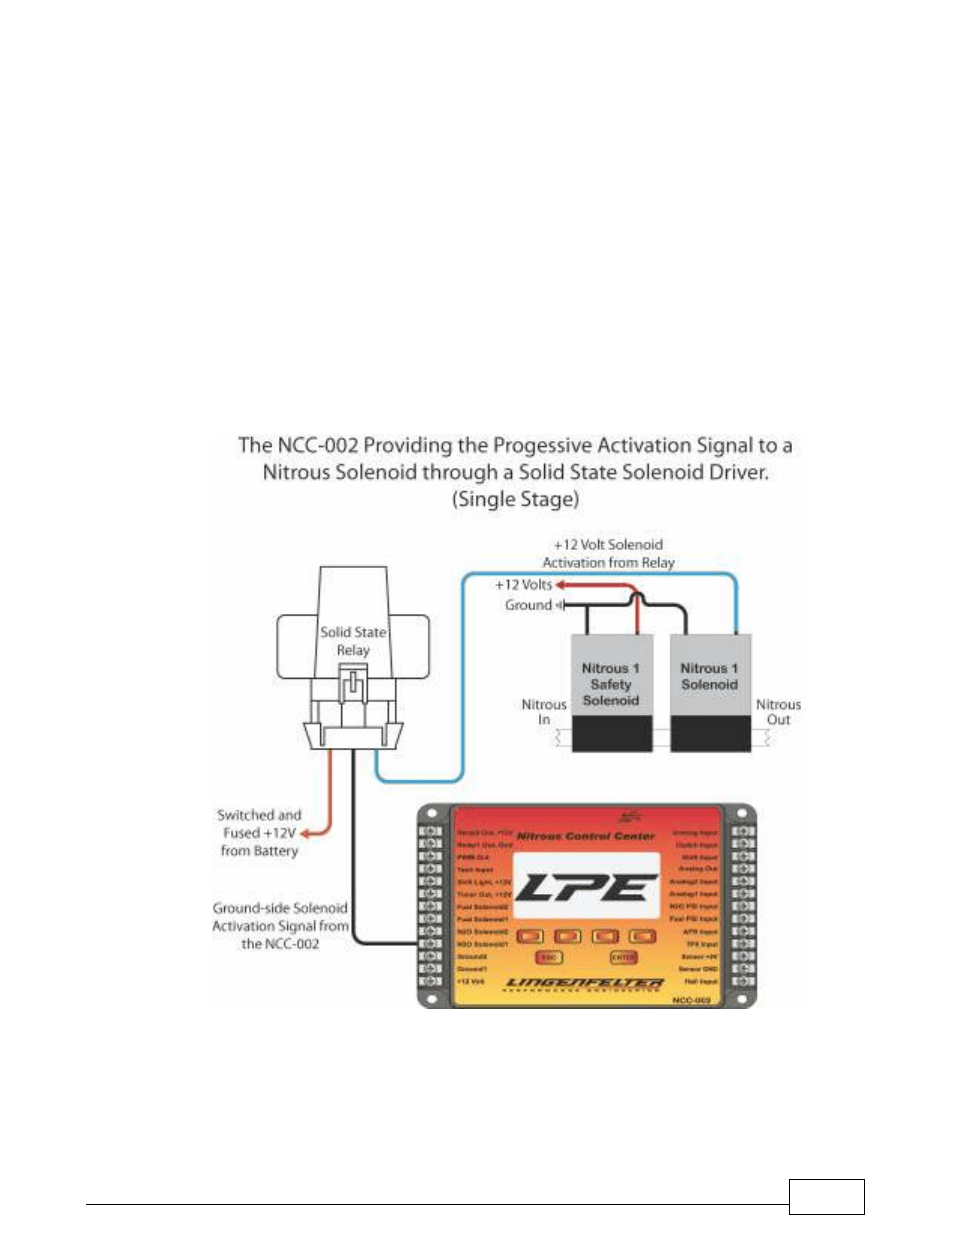 hight resolution of ncc wiring diagram simple wiring schema schematic circuit diagram lingenfelter l460240000 lingenfelter ncc 002 nitrous control